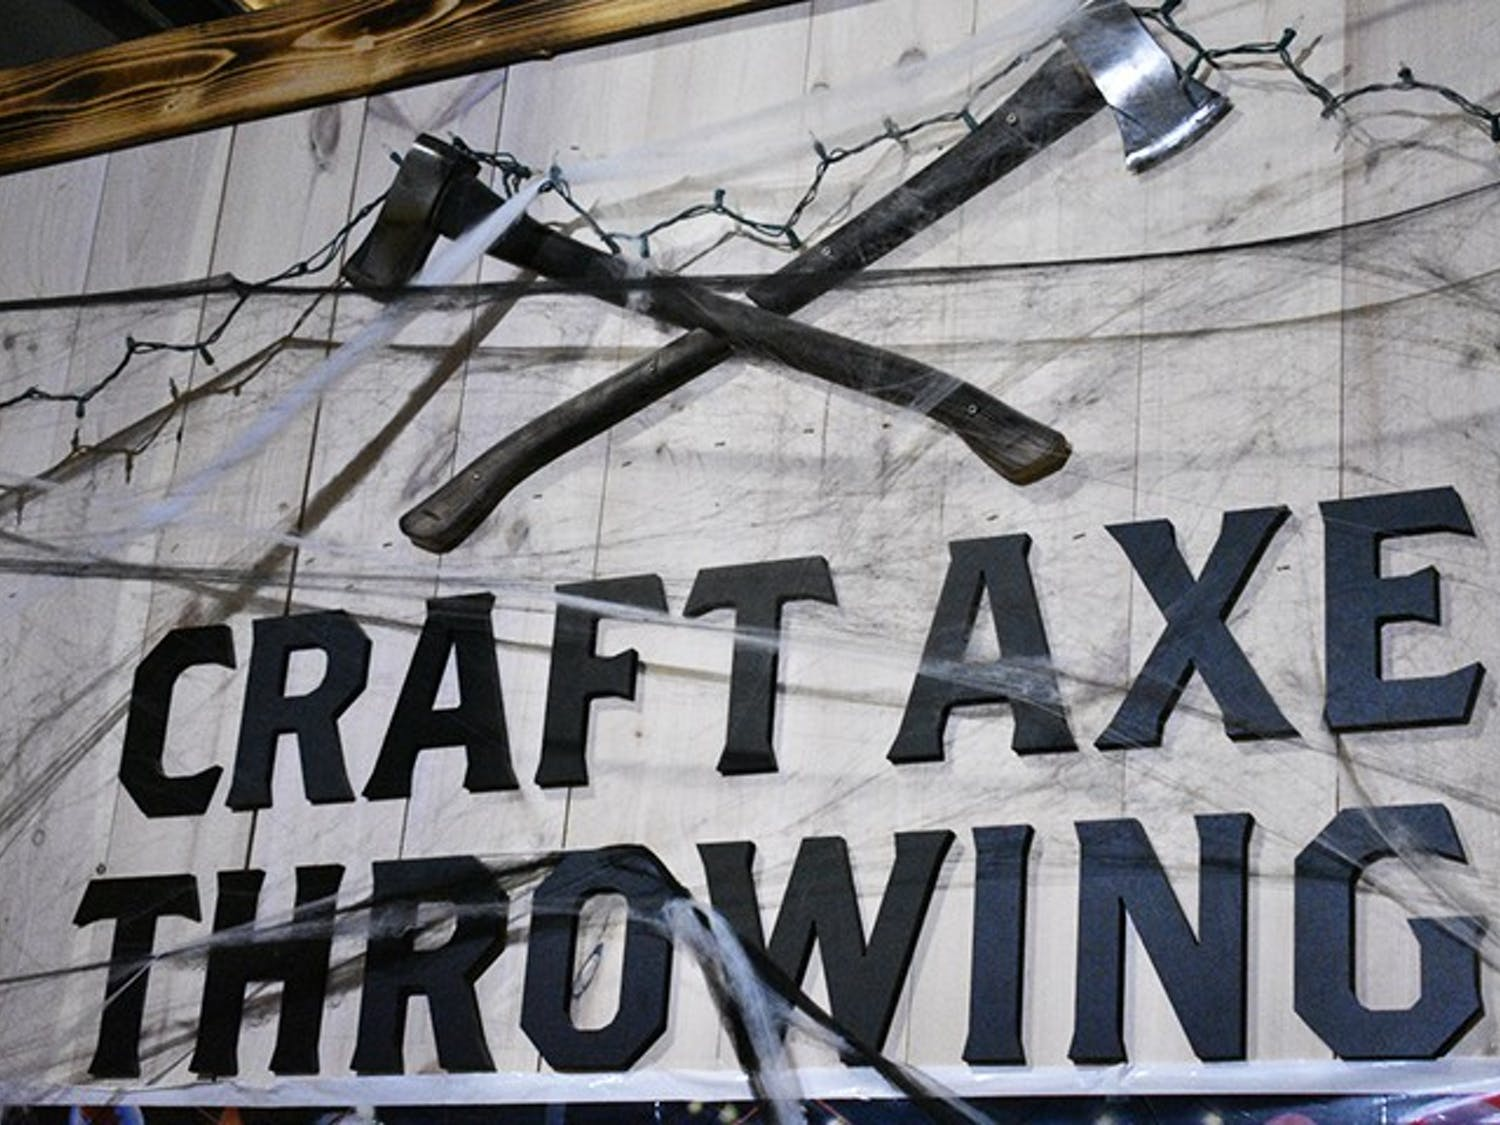 Craft Axe Throwing is located in the Vista on Gervais Street.